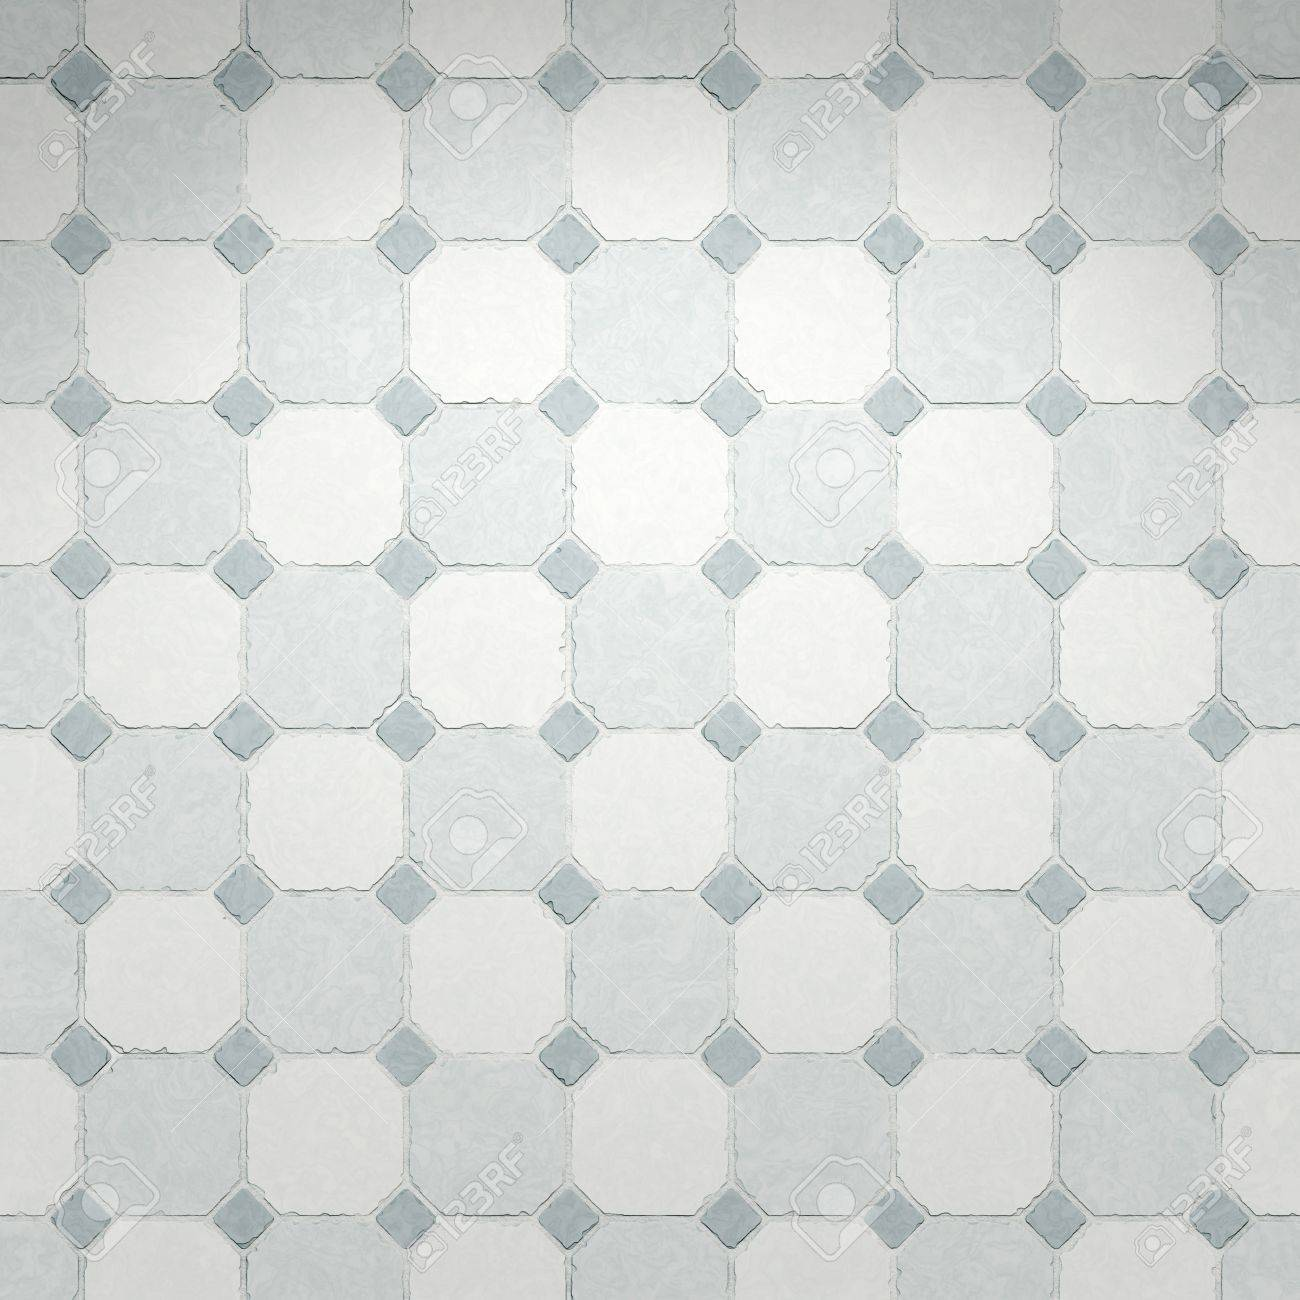 Kitchen Tile Background an image of a grey kitchen tiles background stock photo, picture